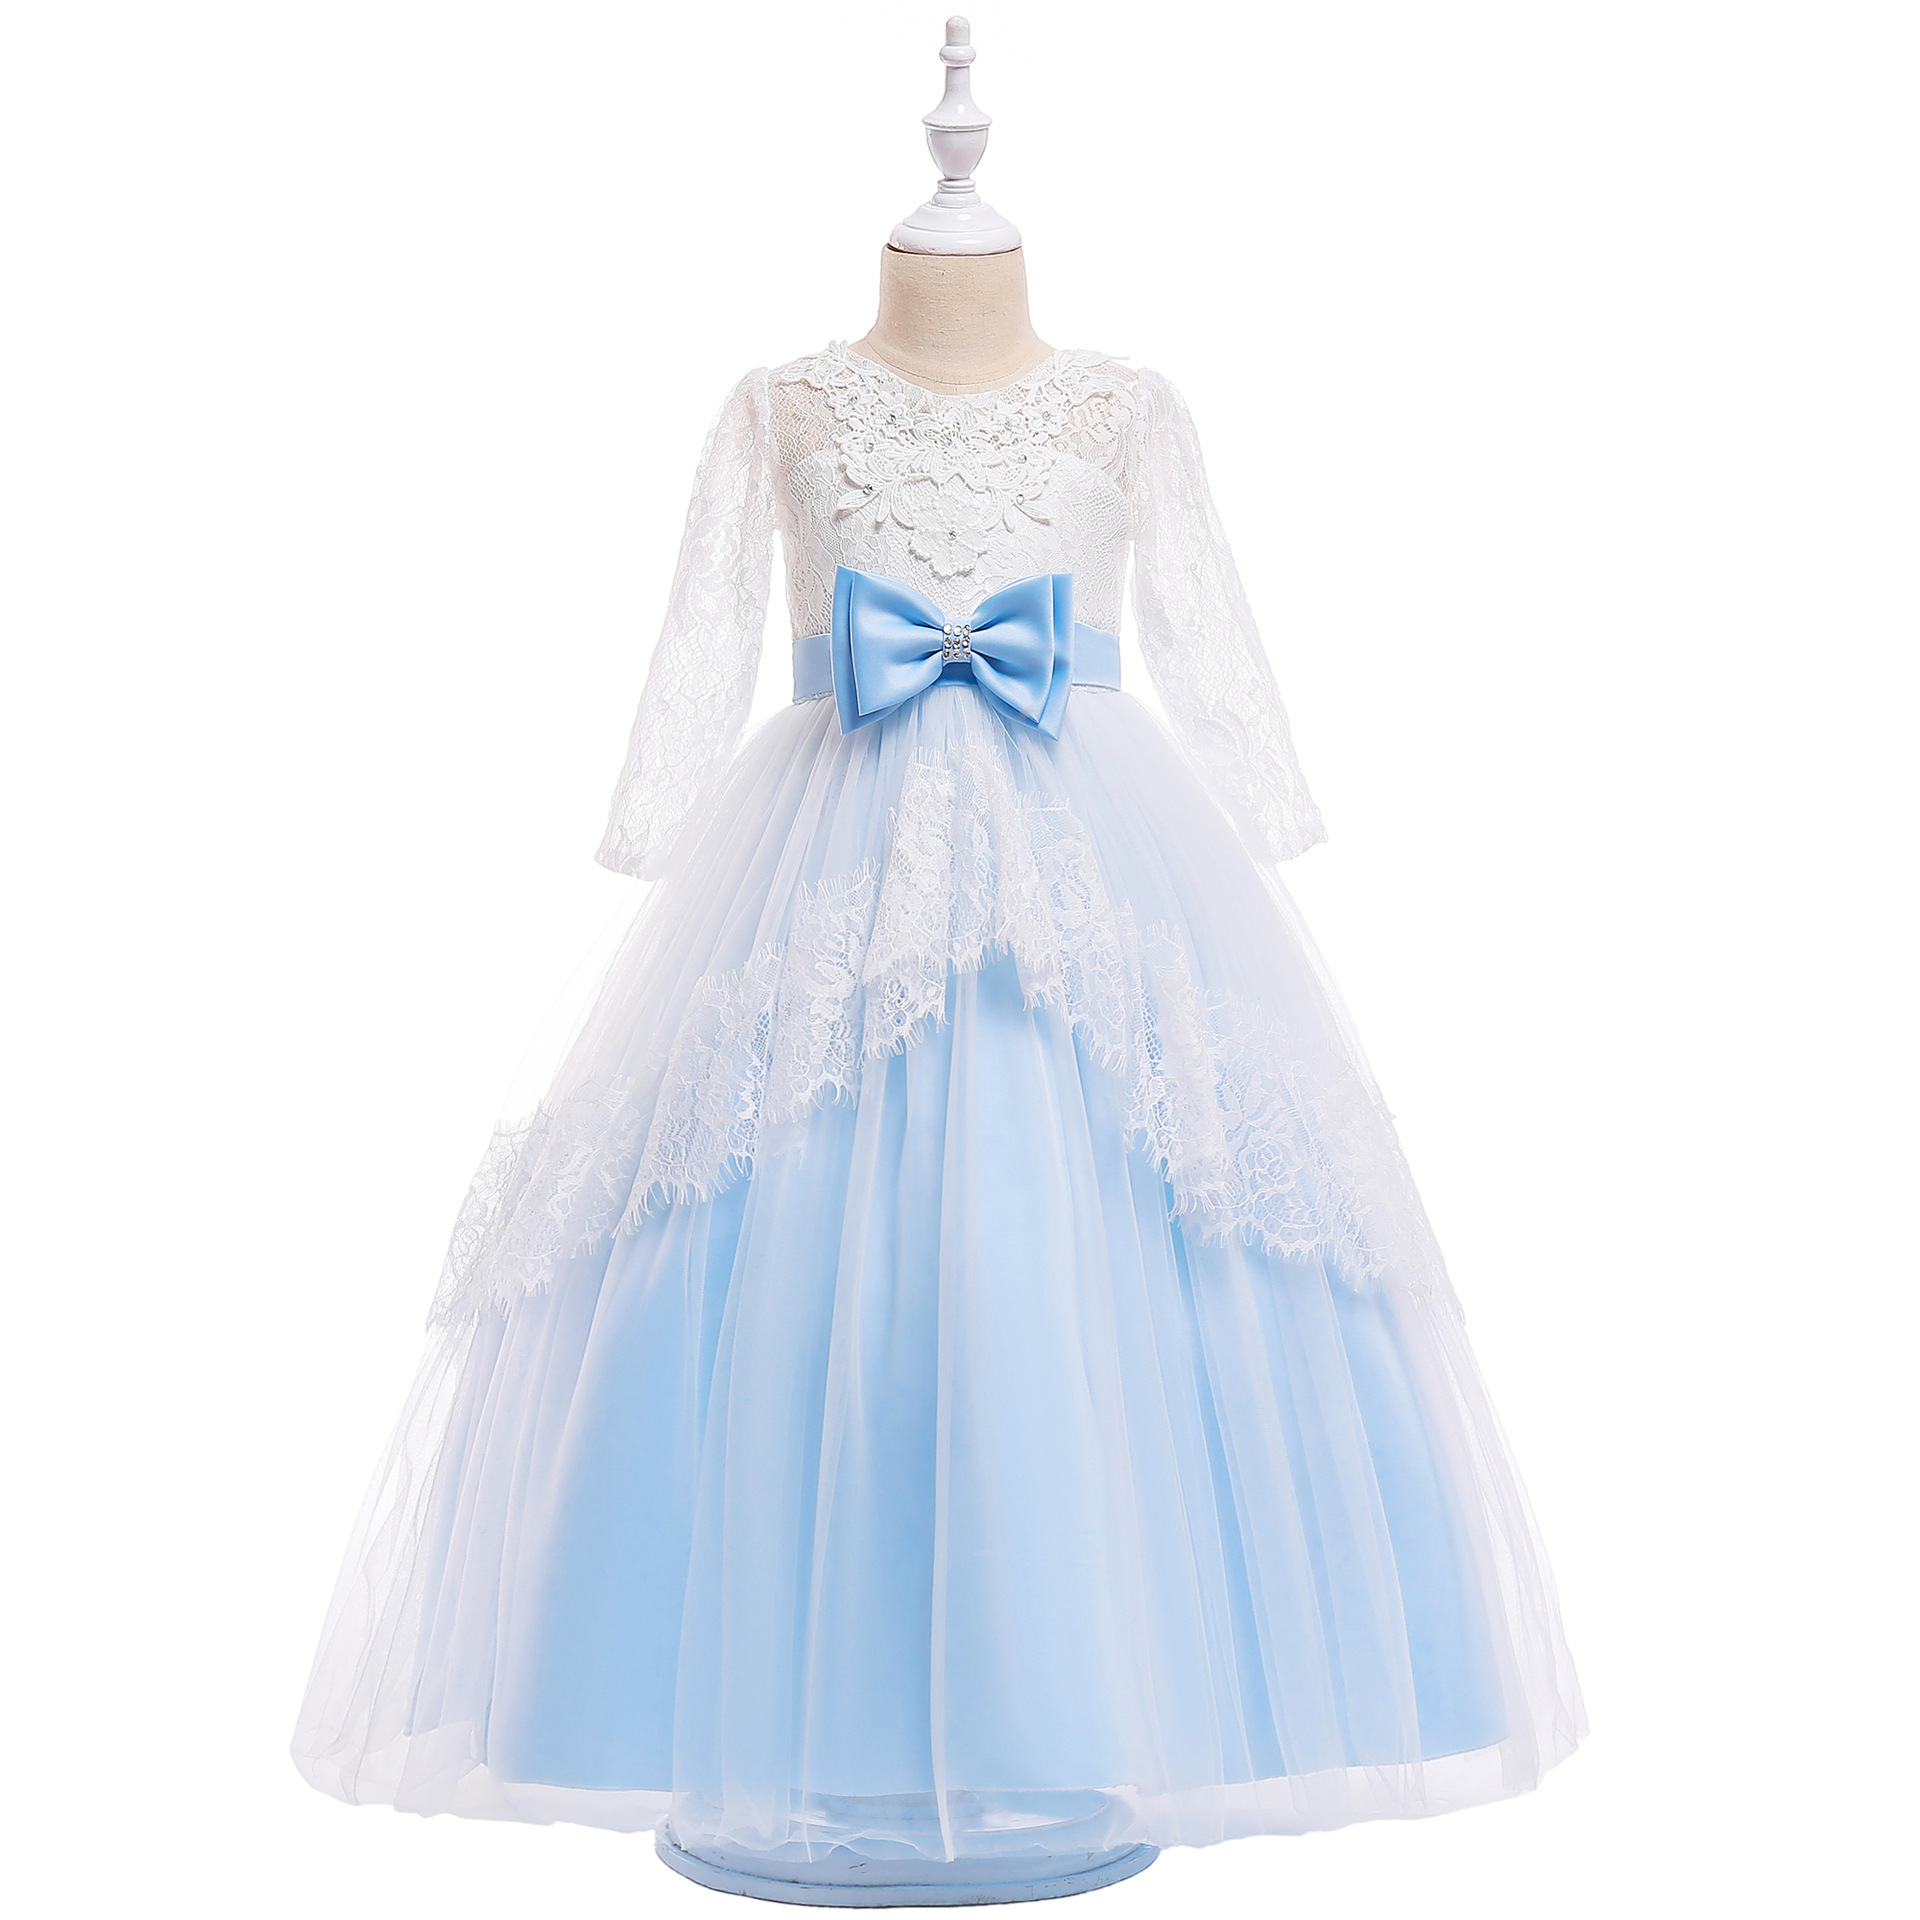 New Style Europe And America Lace Hollow Out Formal Dress Long Skirts Girls Princess Dress Children Wedding Dress Mesh Dress